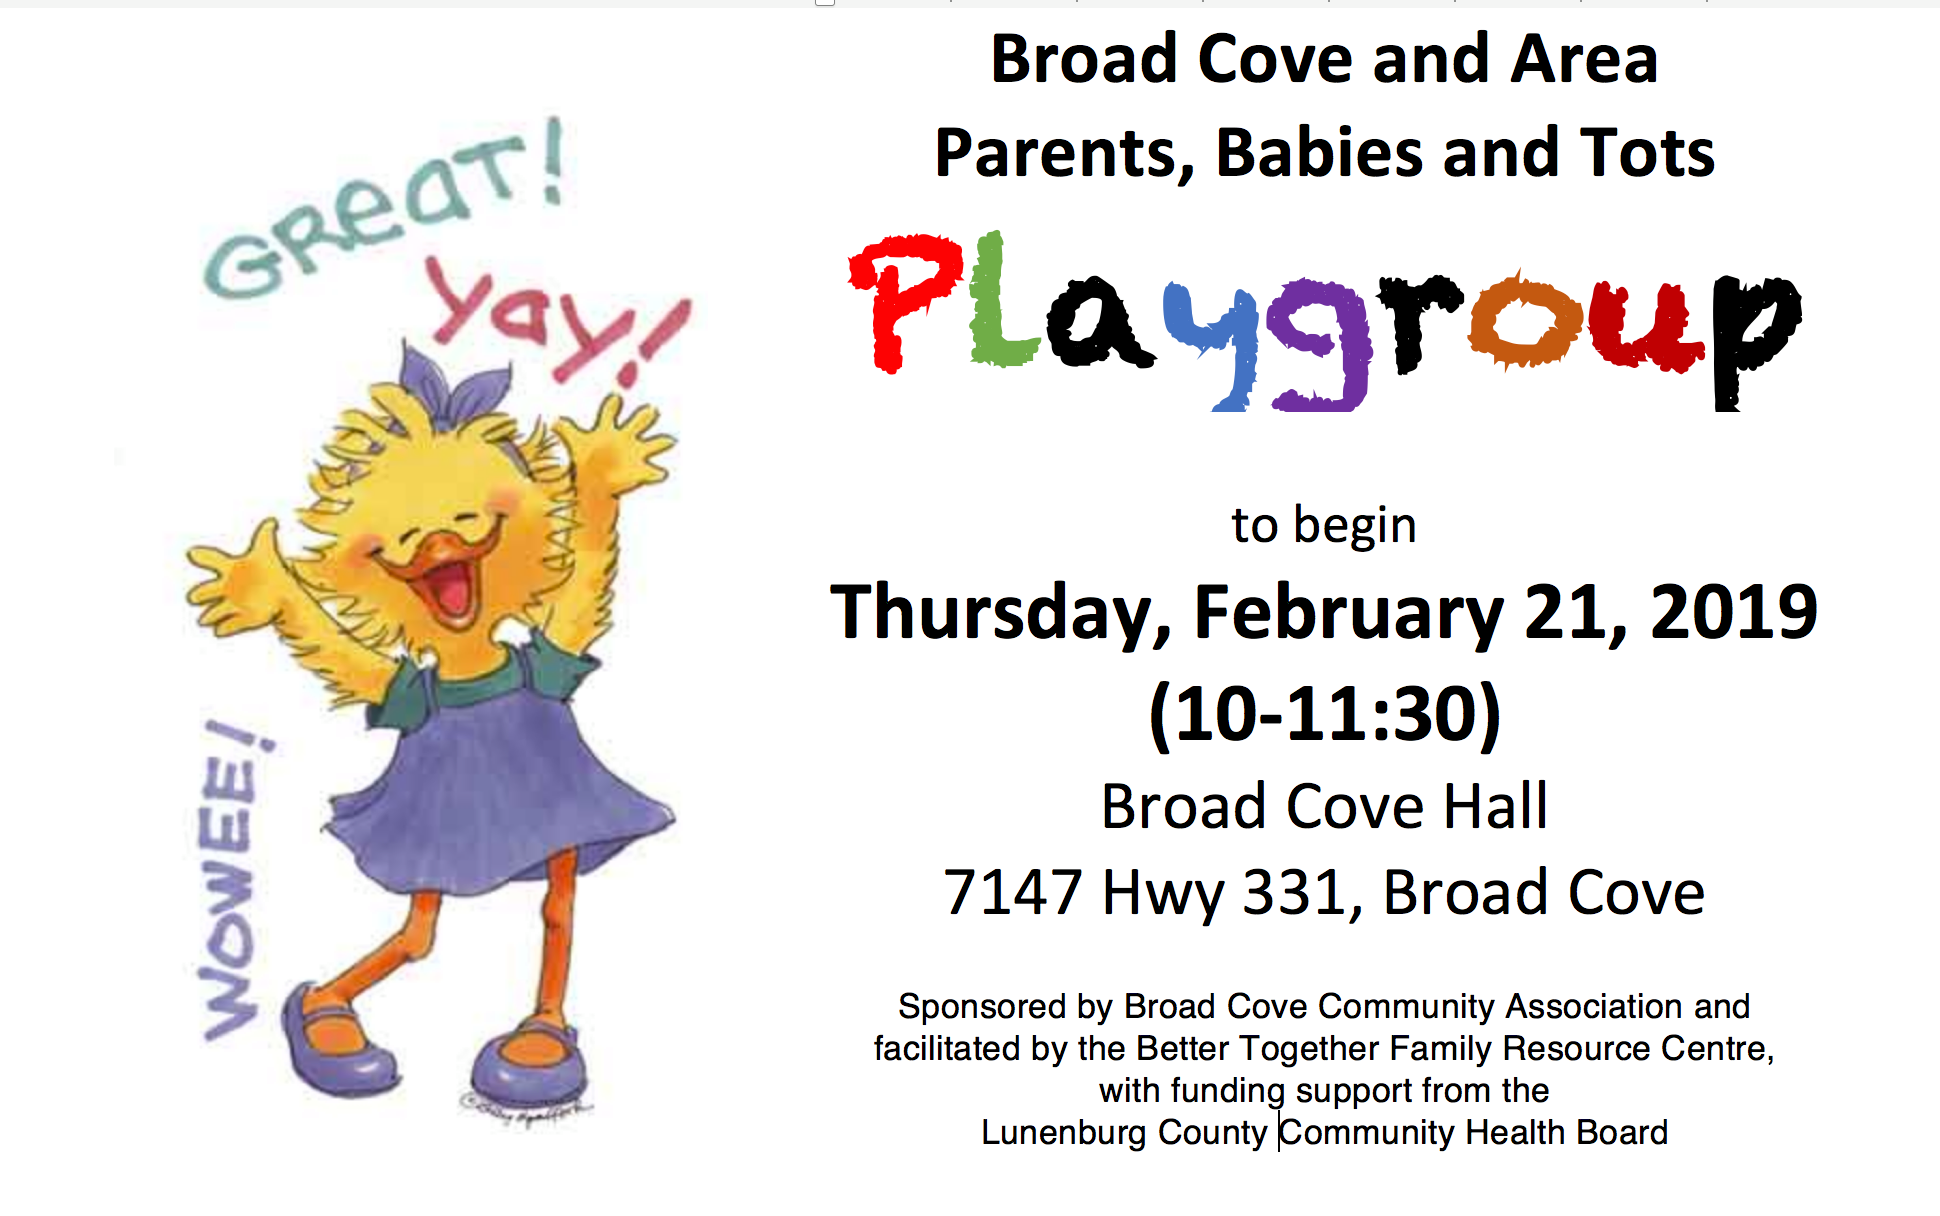 Broad Cove and Area Parents/Babies and Tots Playgroup